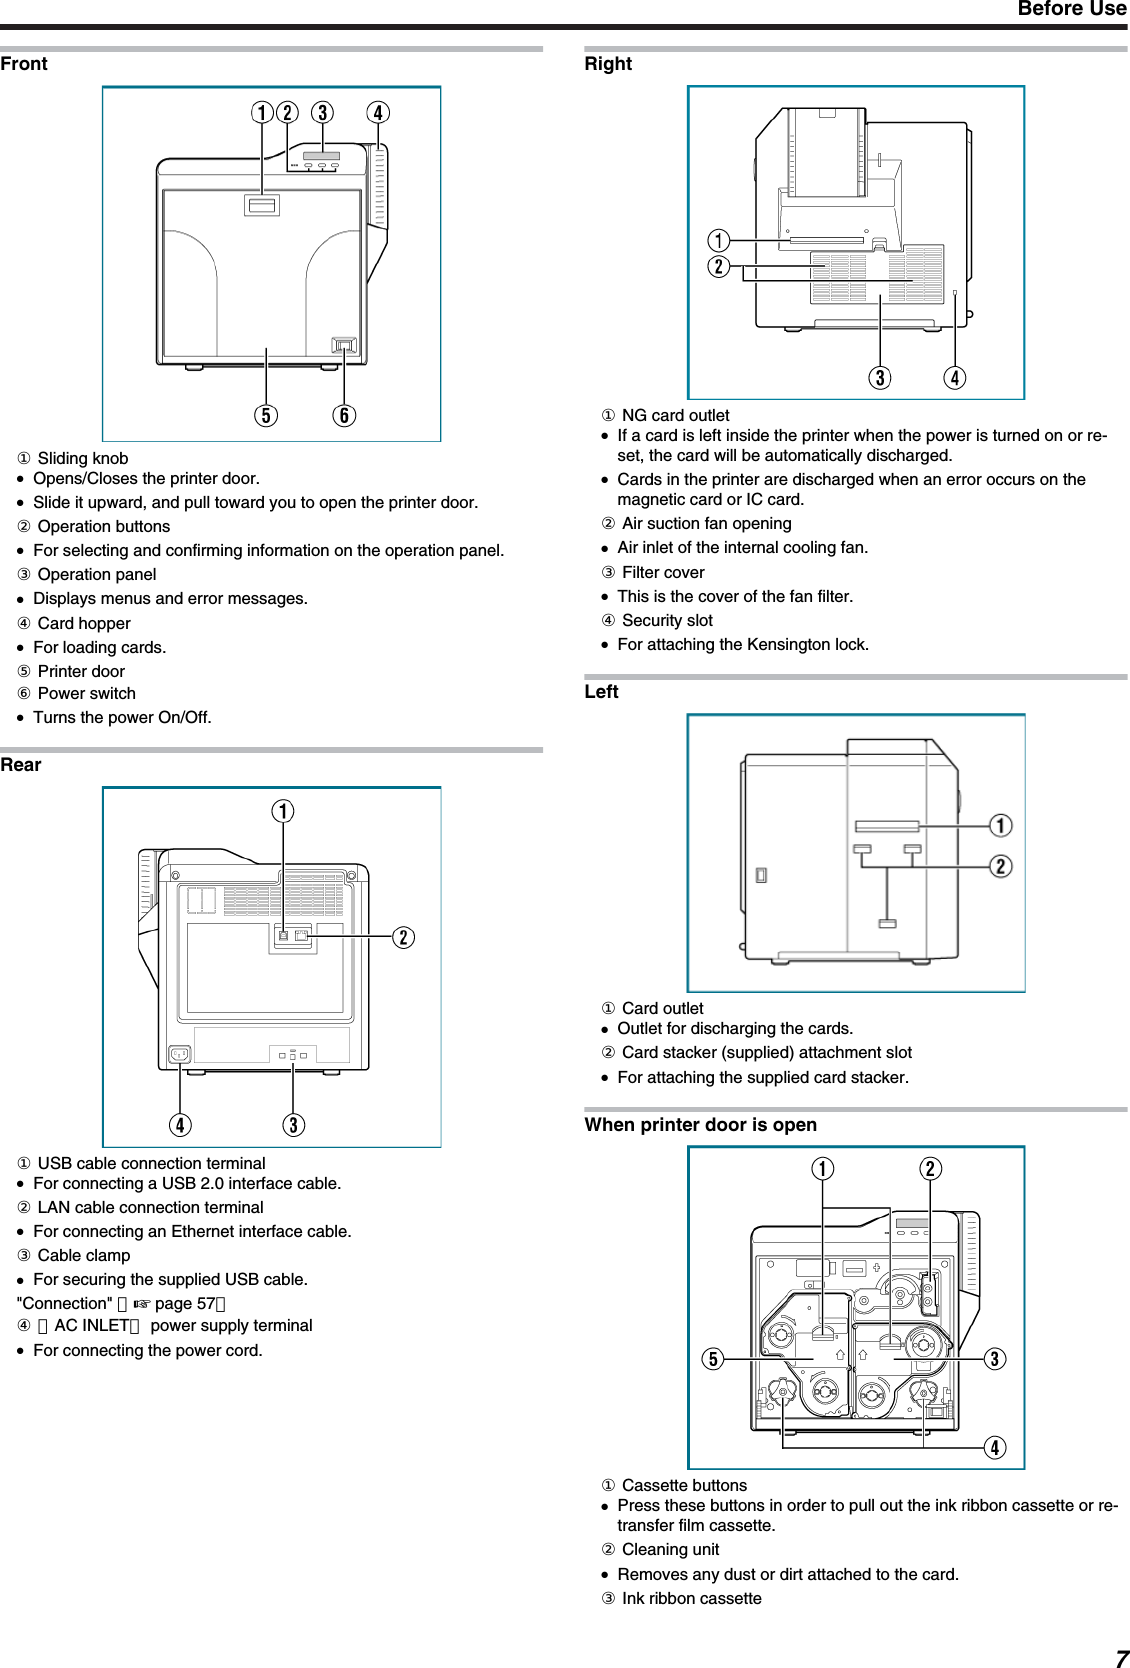 1996 Camaro Vats Wiring Diagram Opinions About 78 Suburban Get Free Image Lt1 Engine Test Stand Elsalvadorla